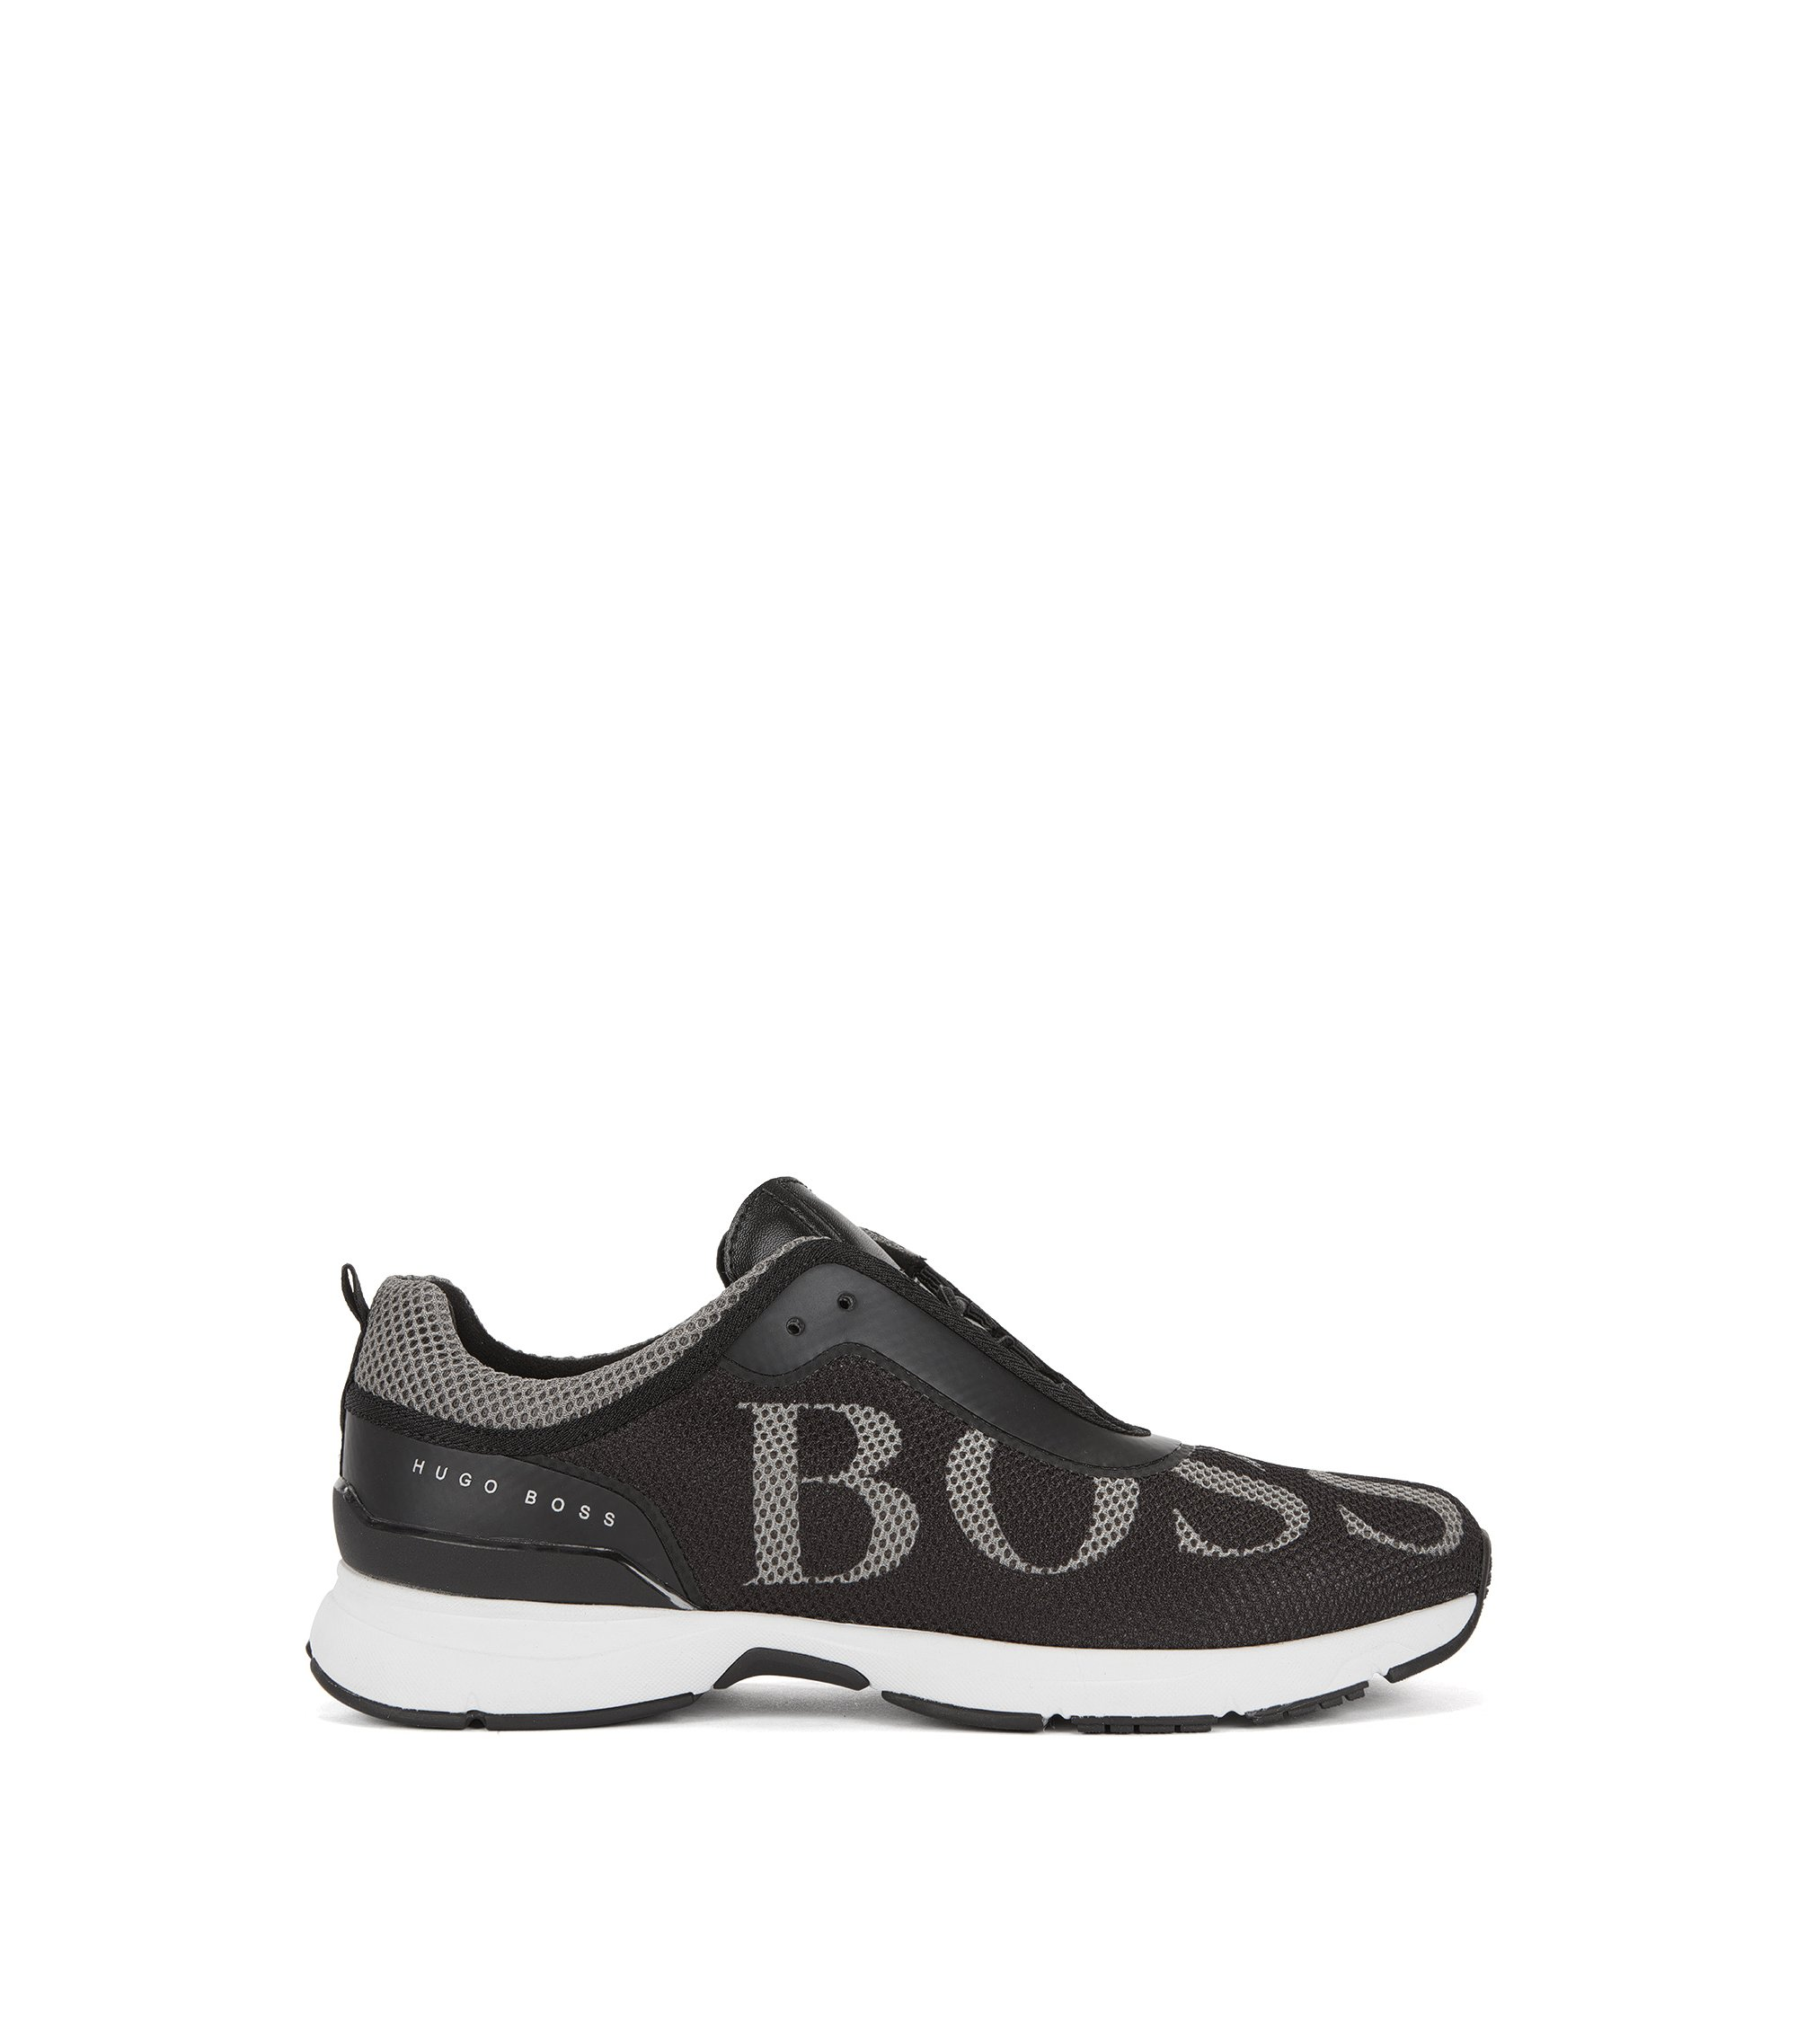 Mesh trainers with Strobel construction, Black